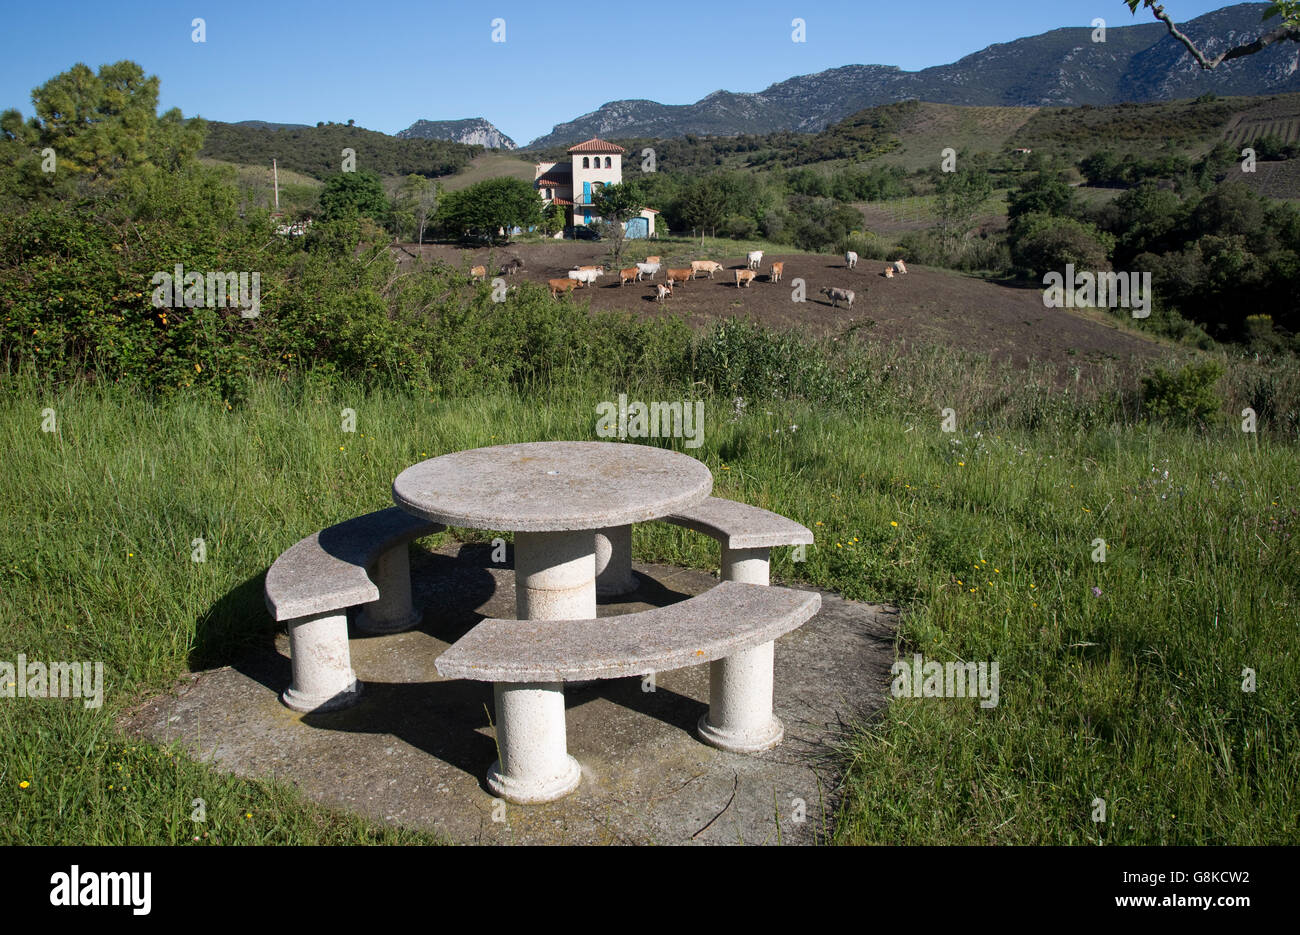 Round Stone Picnic Table And Seats In Rest Area No People Near Small - Stone picnic table